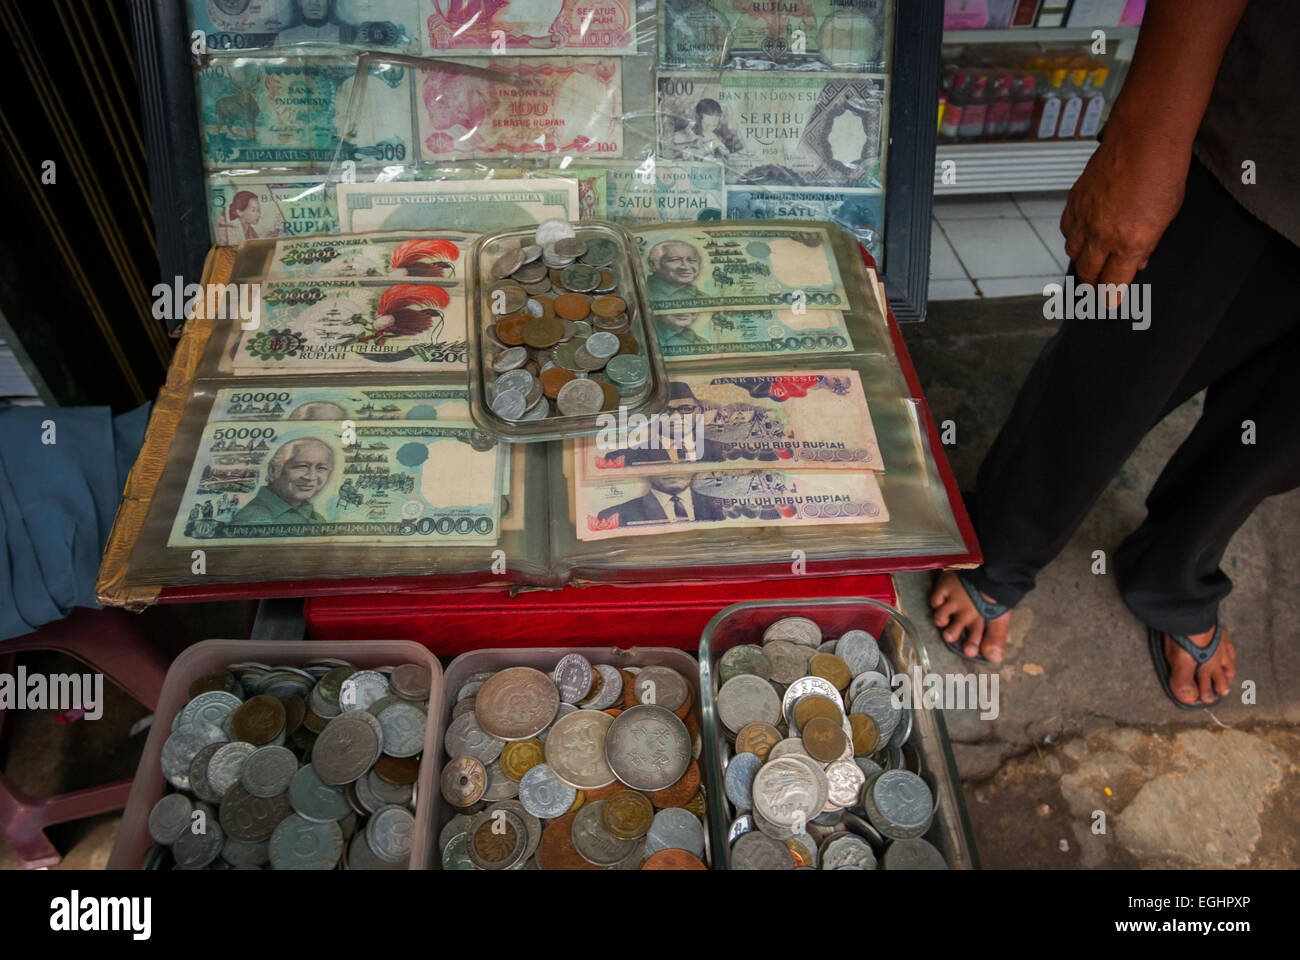 Old (withdrawn, expired) Indonesian moneys are being sold as collector items at a local market in Jakarta. - Stock Image